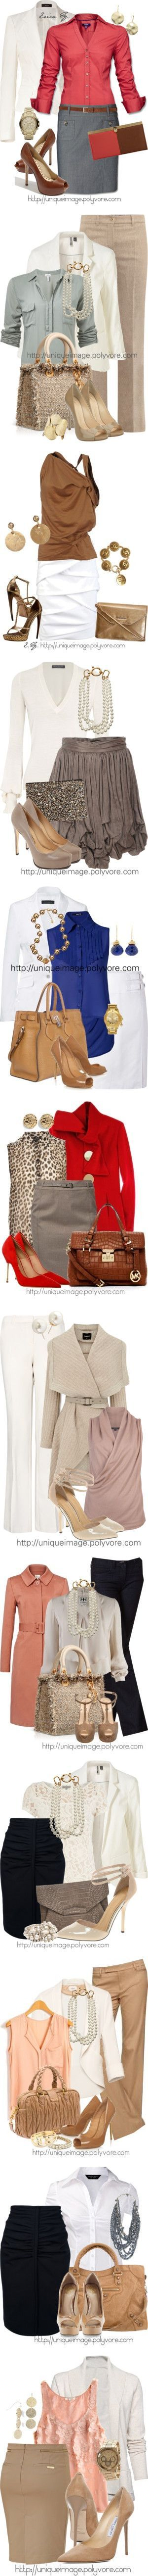 Work outfits ╰☆╮  re-pinned by http://www.wfpblogs.com/category/rachels-blog/